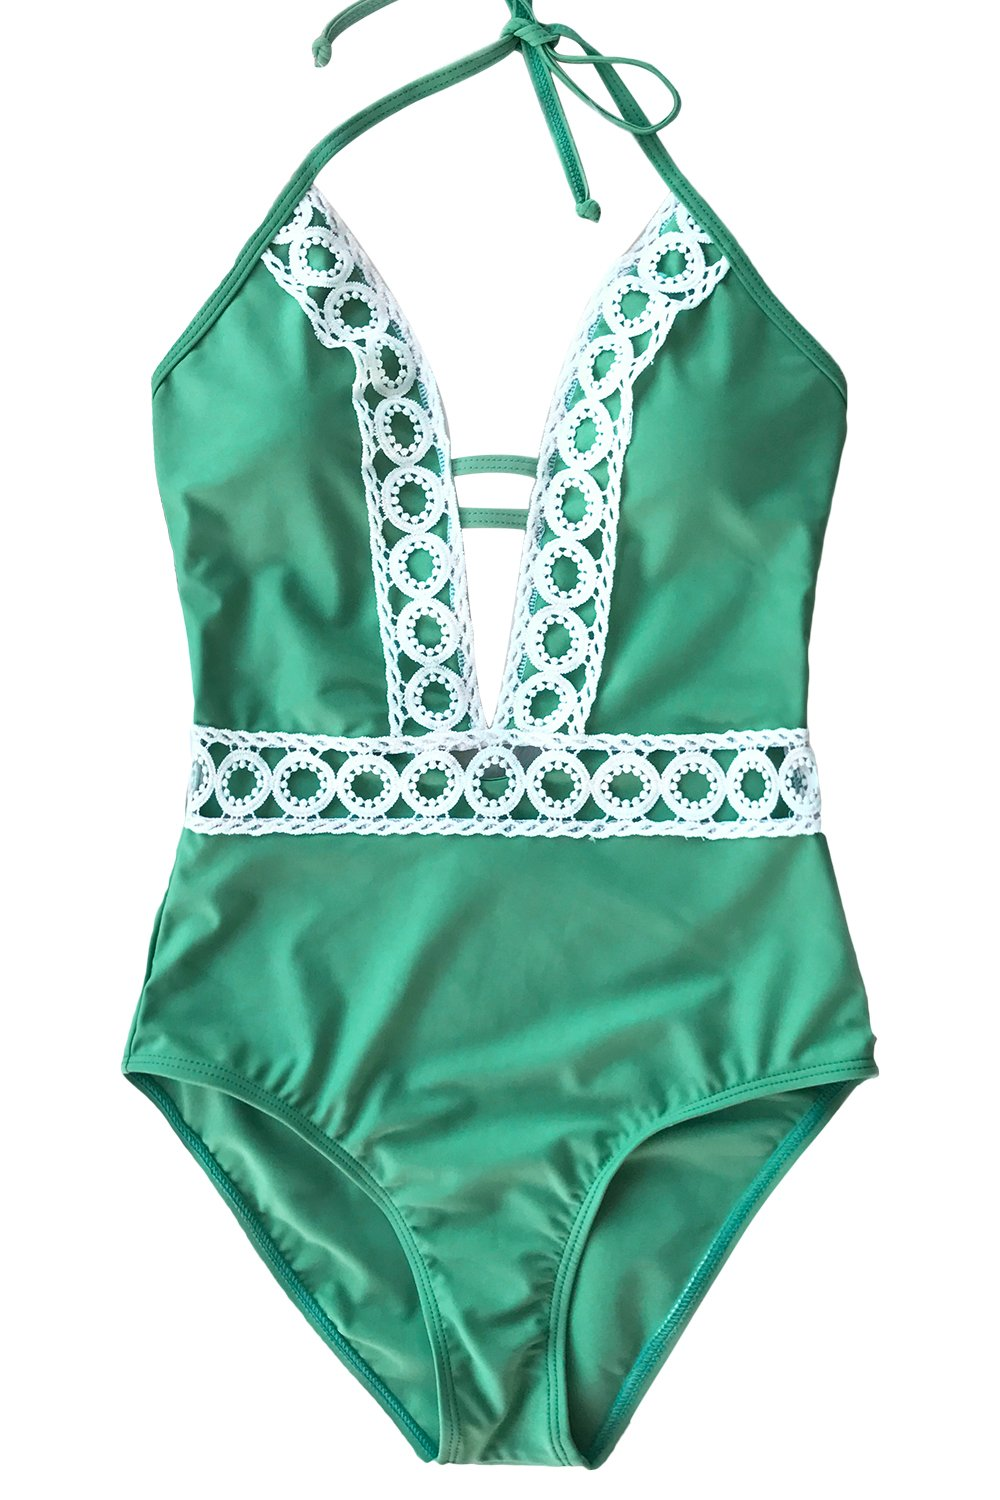 19b890ae2b8 CUPSHE Women's Thick Forest Deep V Neck Halter One-Piece Swimsuit, Green,  Large